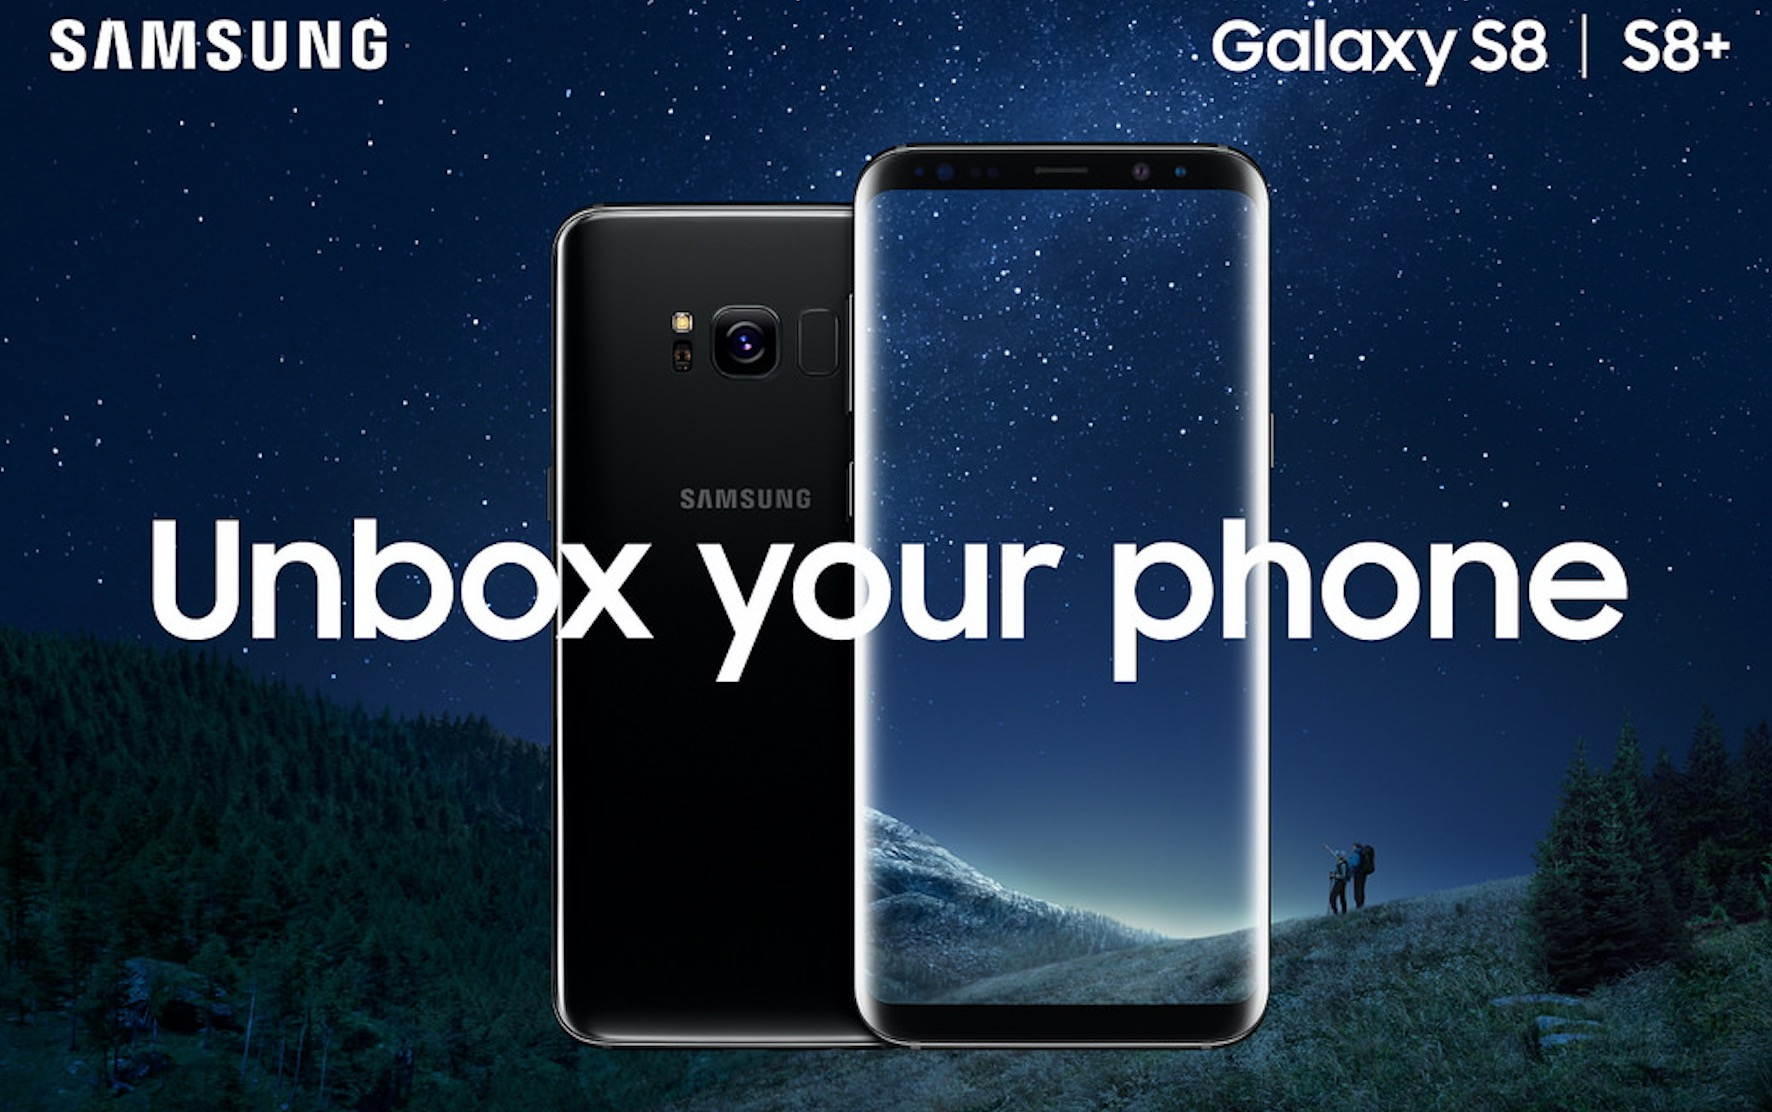 samsung announces the galaxy s8 and galaxy s8 arrives april 21 droid life. Black Bedroom Furniture Sets. Home Design Ideas